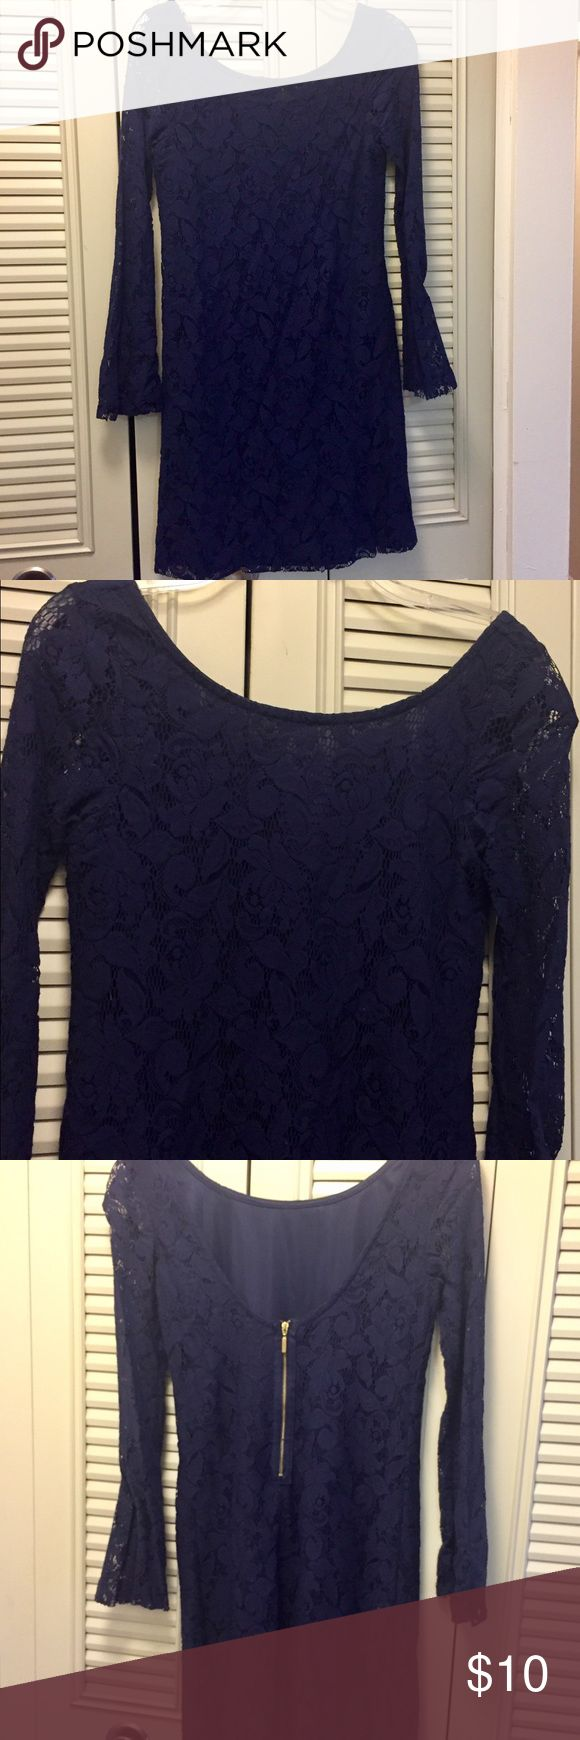 Zara lace dress This Zara dress is navy blue with lace. The sleeves are sheer lace but the bodice has a blue sheath underneath so it's not see through. It features a scoop necklace in the front, a slightly lower back and a gold zipper. Excellent condition. Perfect for spring weekends. Zara Dresses